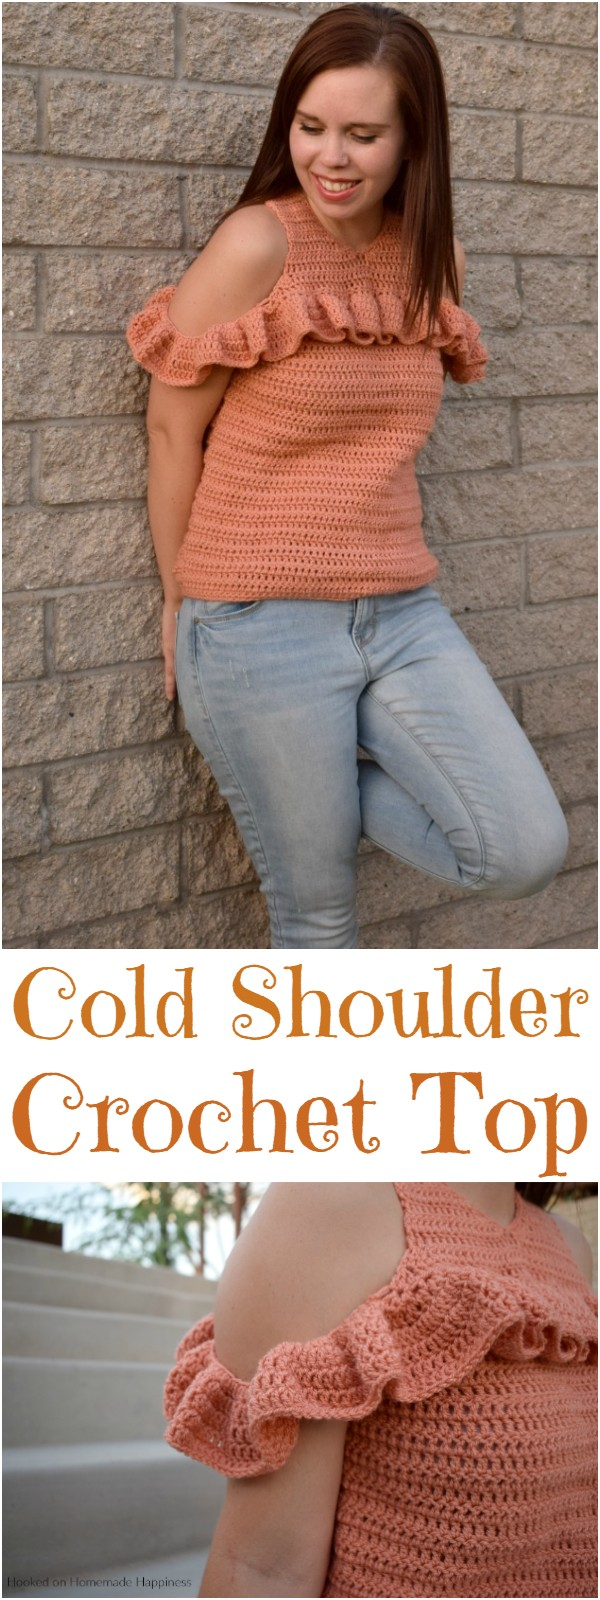 Cold Shoulder Crochet Top Pattern